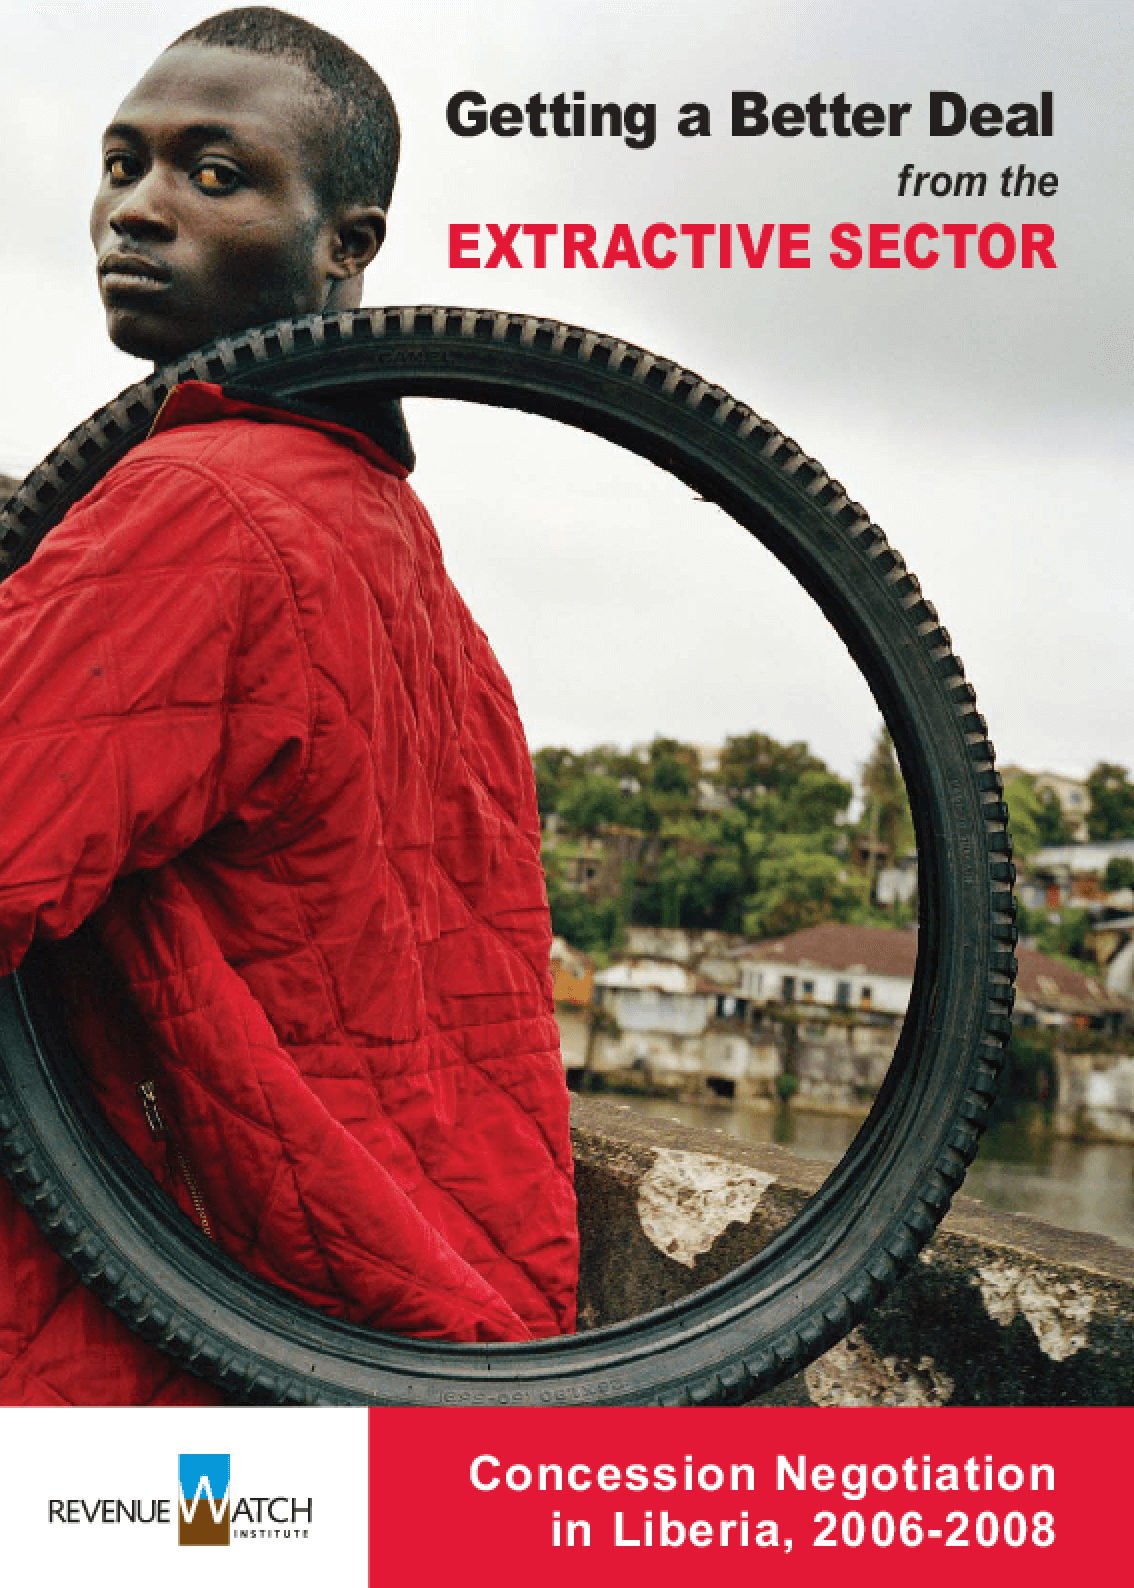 Getting a Better Deal From the Extractive Sector: Concession Negotiation in Liberia, 2006-2008